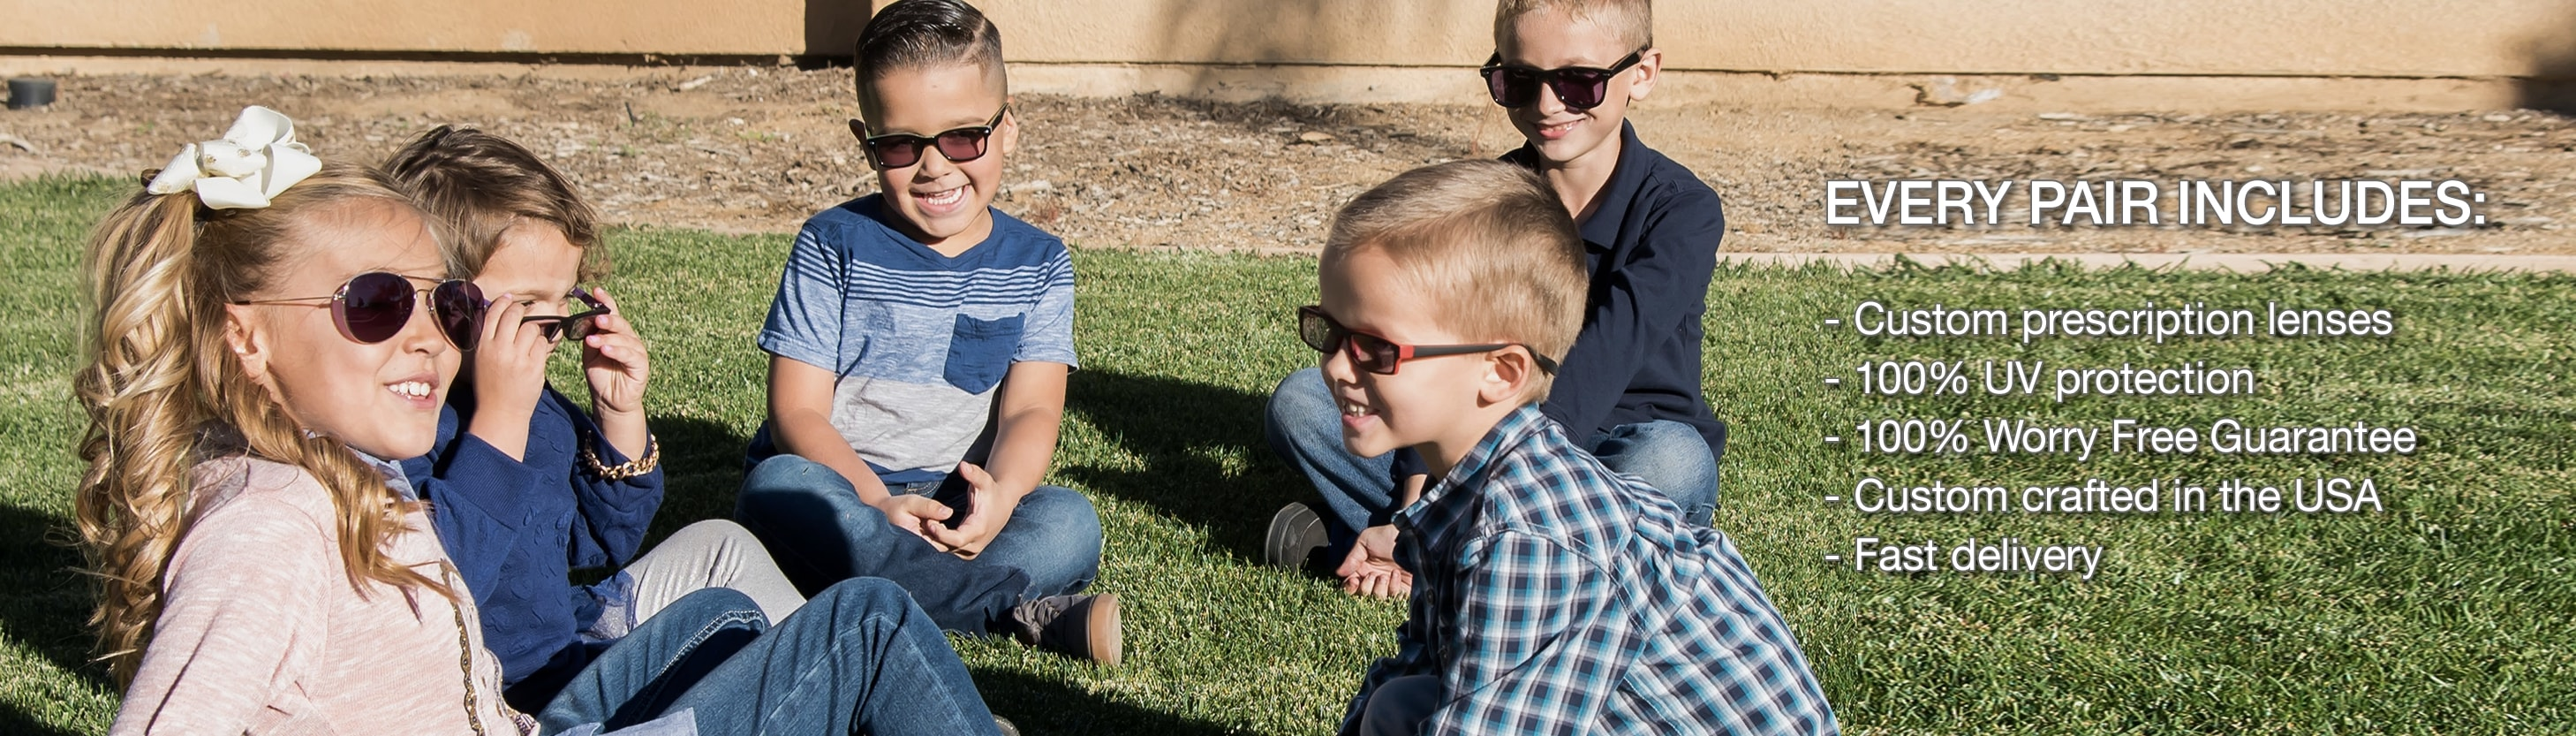 5 children wearing sunglasses, sitting on the grass laughing and playing.